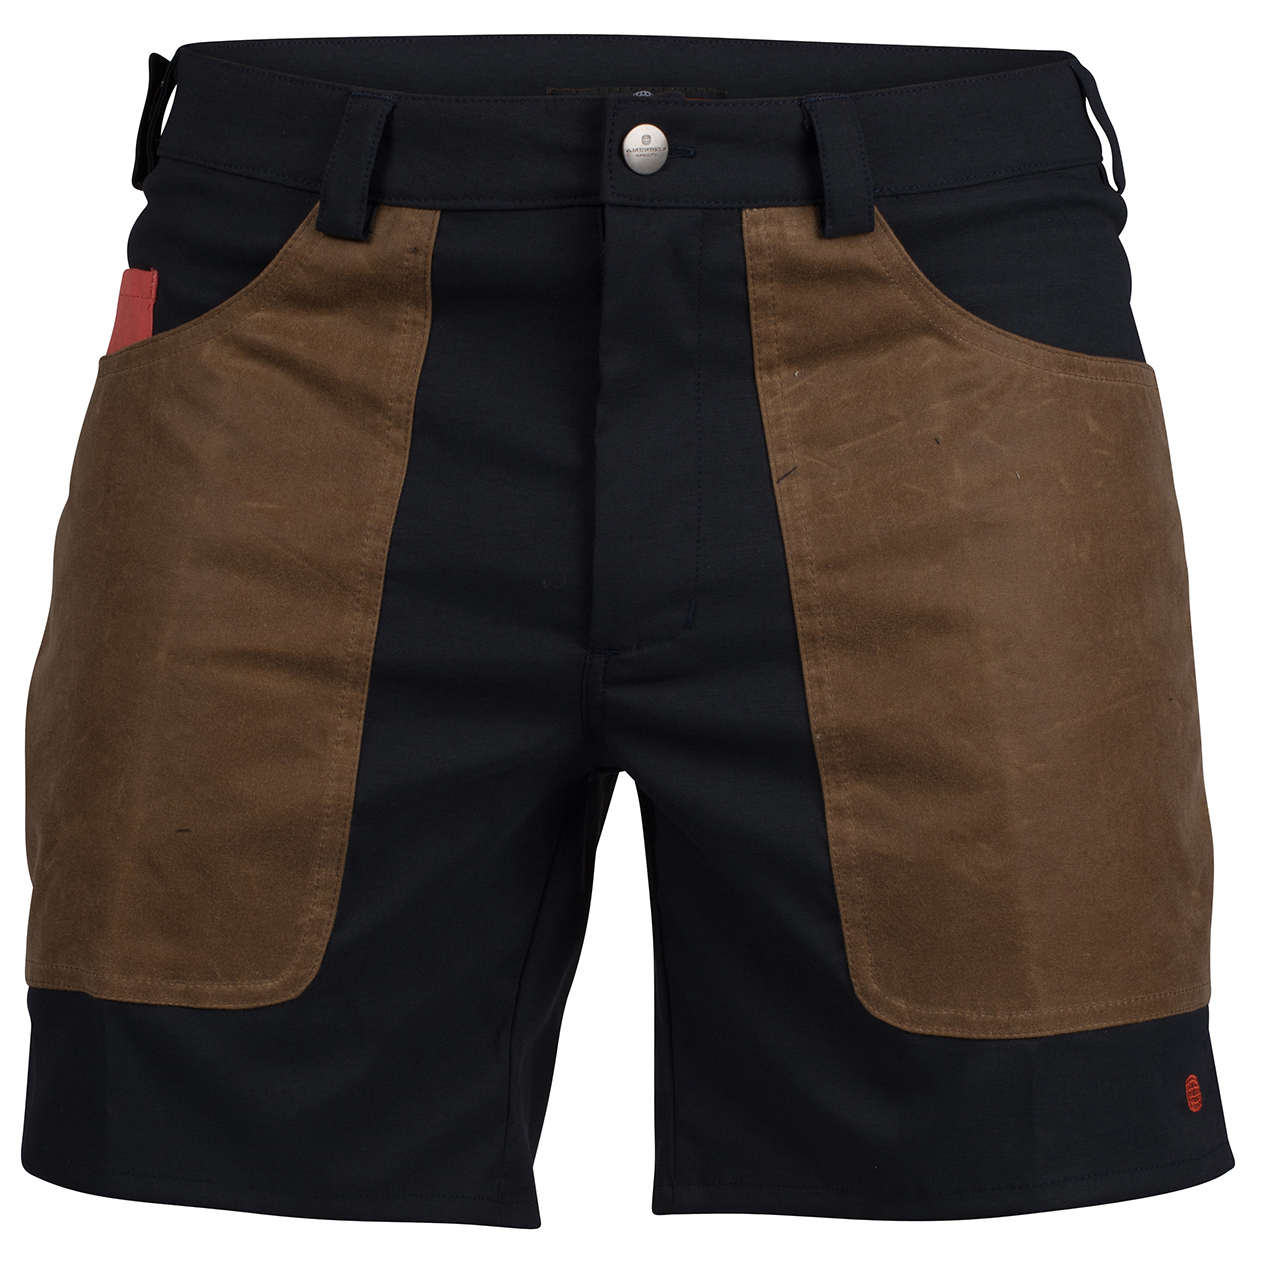 dcb2873764 Amundsen Sports 7Incher Field Shorts - Shorts Men's | Free UK ...